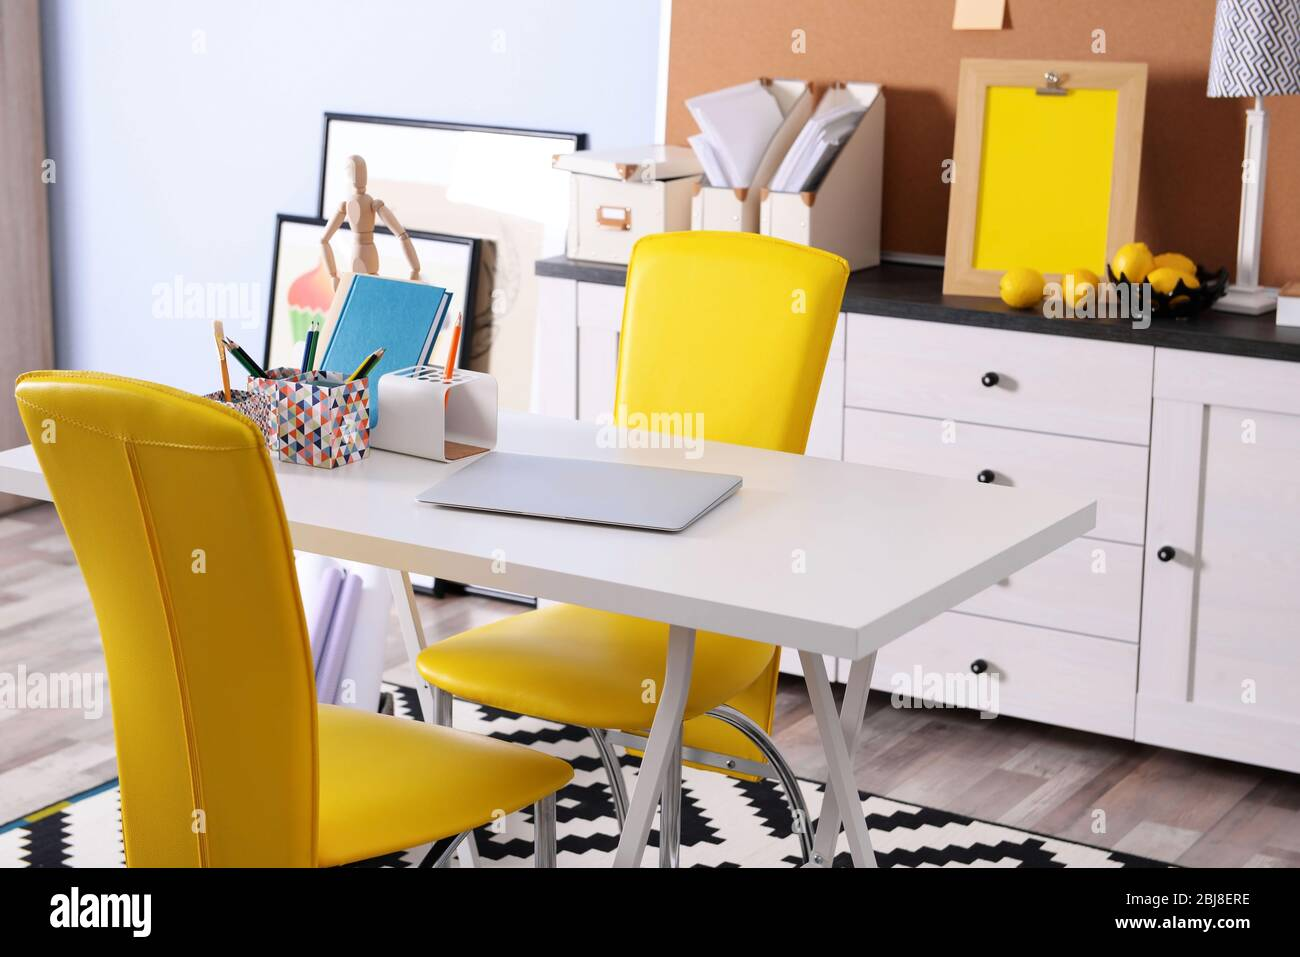 Modern Room Design Furniture Set With Table And Chairs Stock Photo Alamy